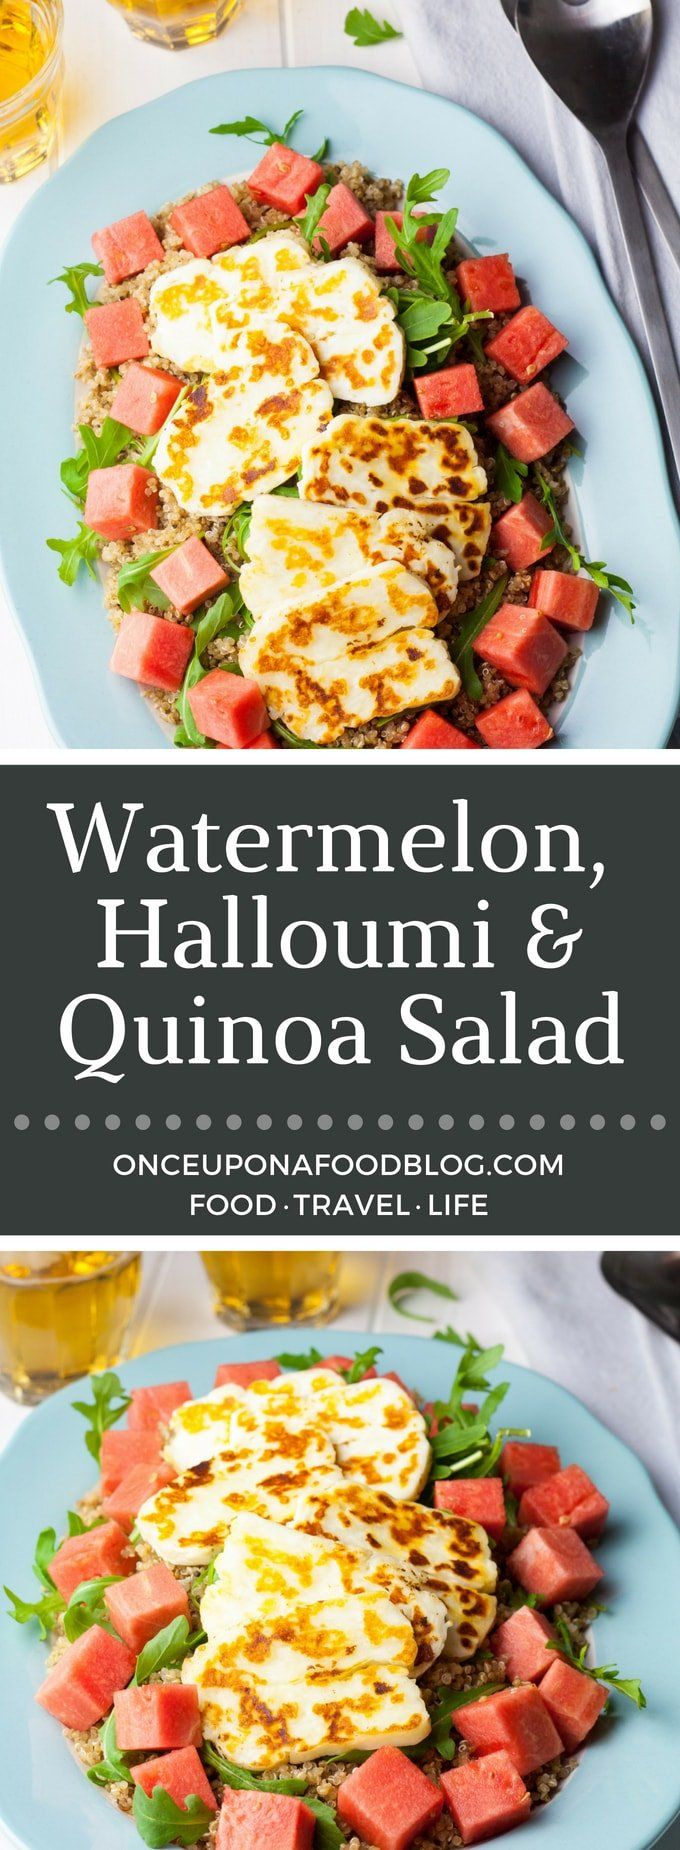 A gorgeous watermelon halloumi salad, packed full of summer flavours. A healthy mid-week supper or weekend lunch. Easy to adapt to vegan. #watermelon #halloumi #halloumisalad #recipe #onceuponafoodblog